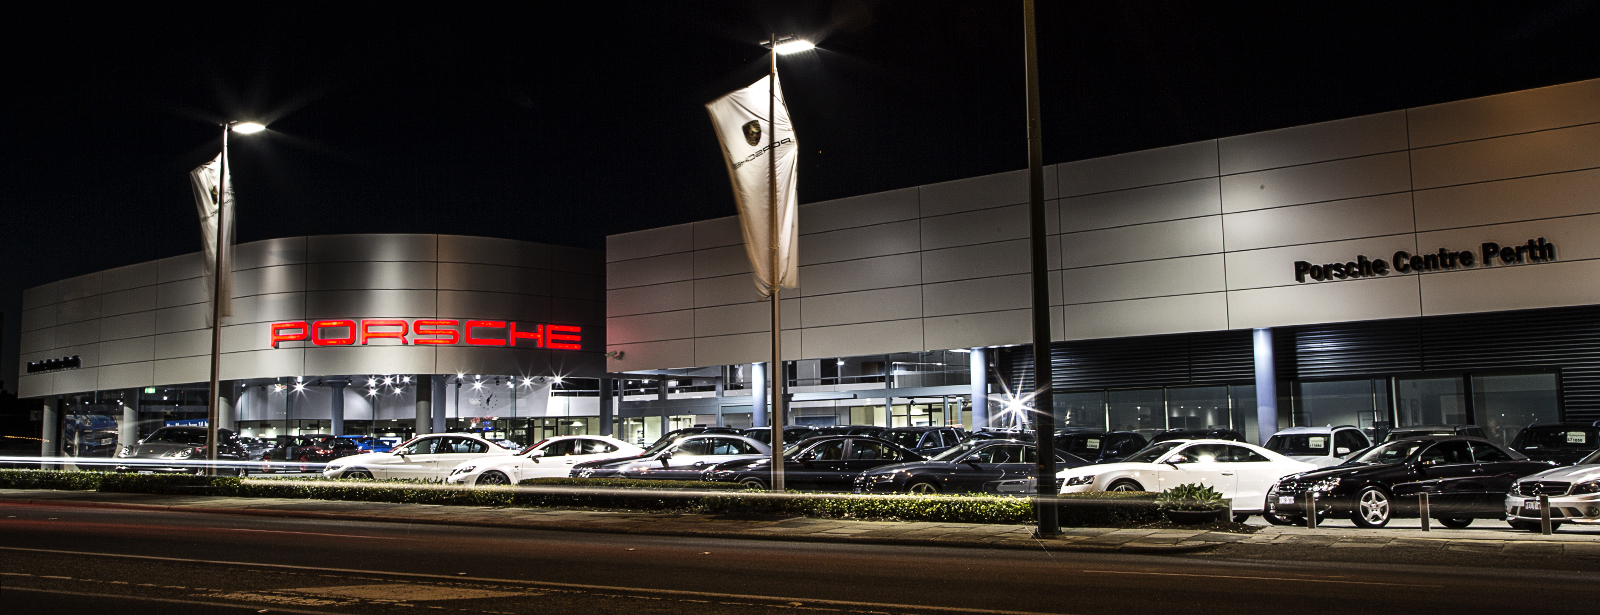 How to Find Porsche Centre Perth